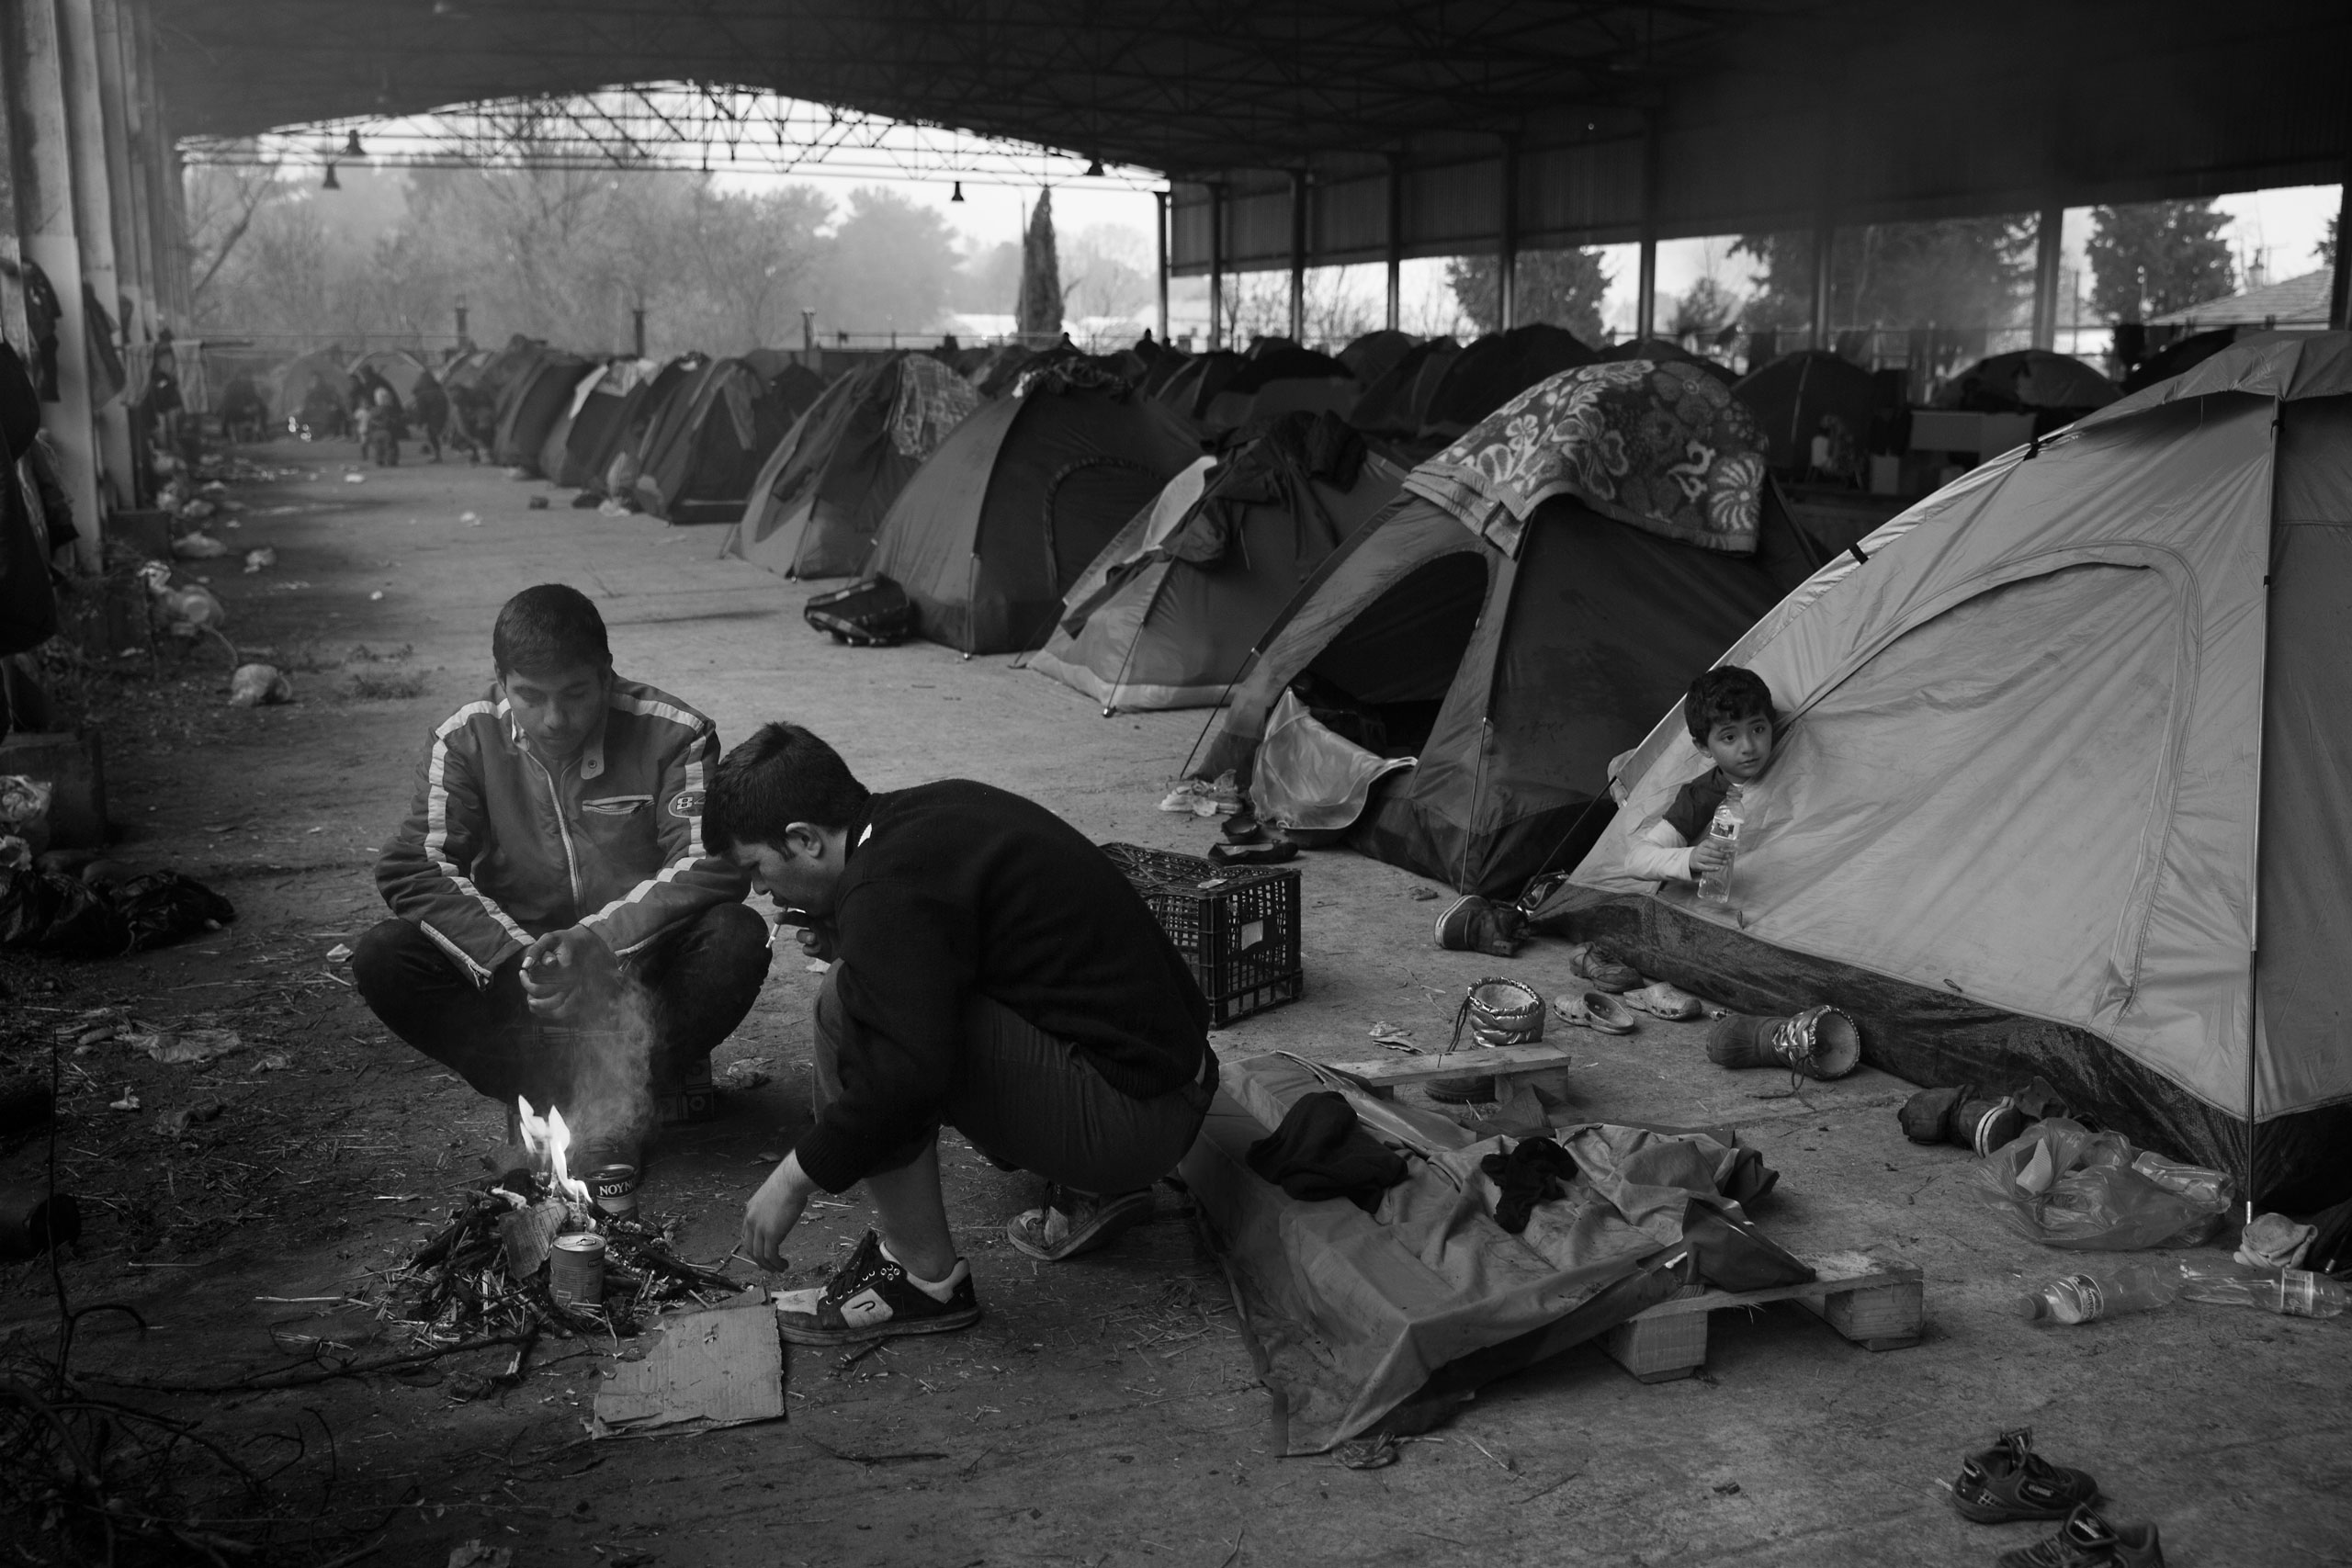 Tents line the inside of an old railway hangar near the town of Idomeni, Greece at the border with Macedonia. The refugees are being stopped from moving beyond Greece leaving thousands stranded in desperate conditions, March 13, 2016.